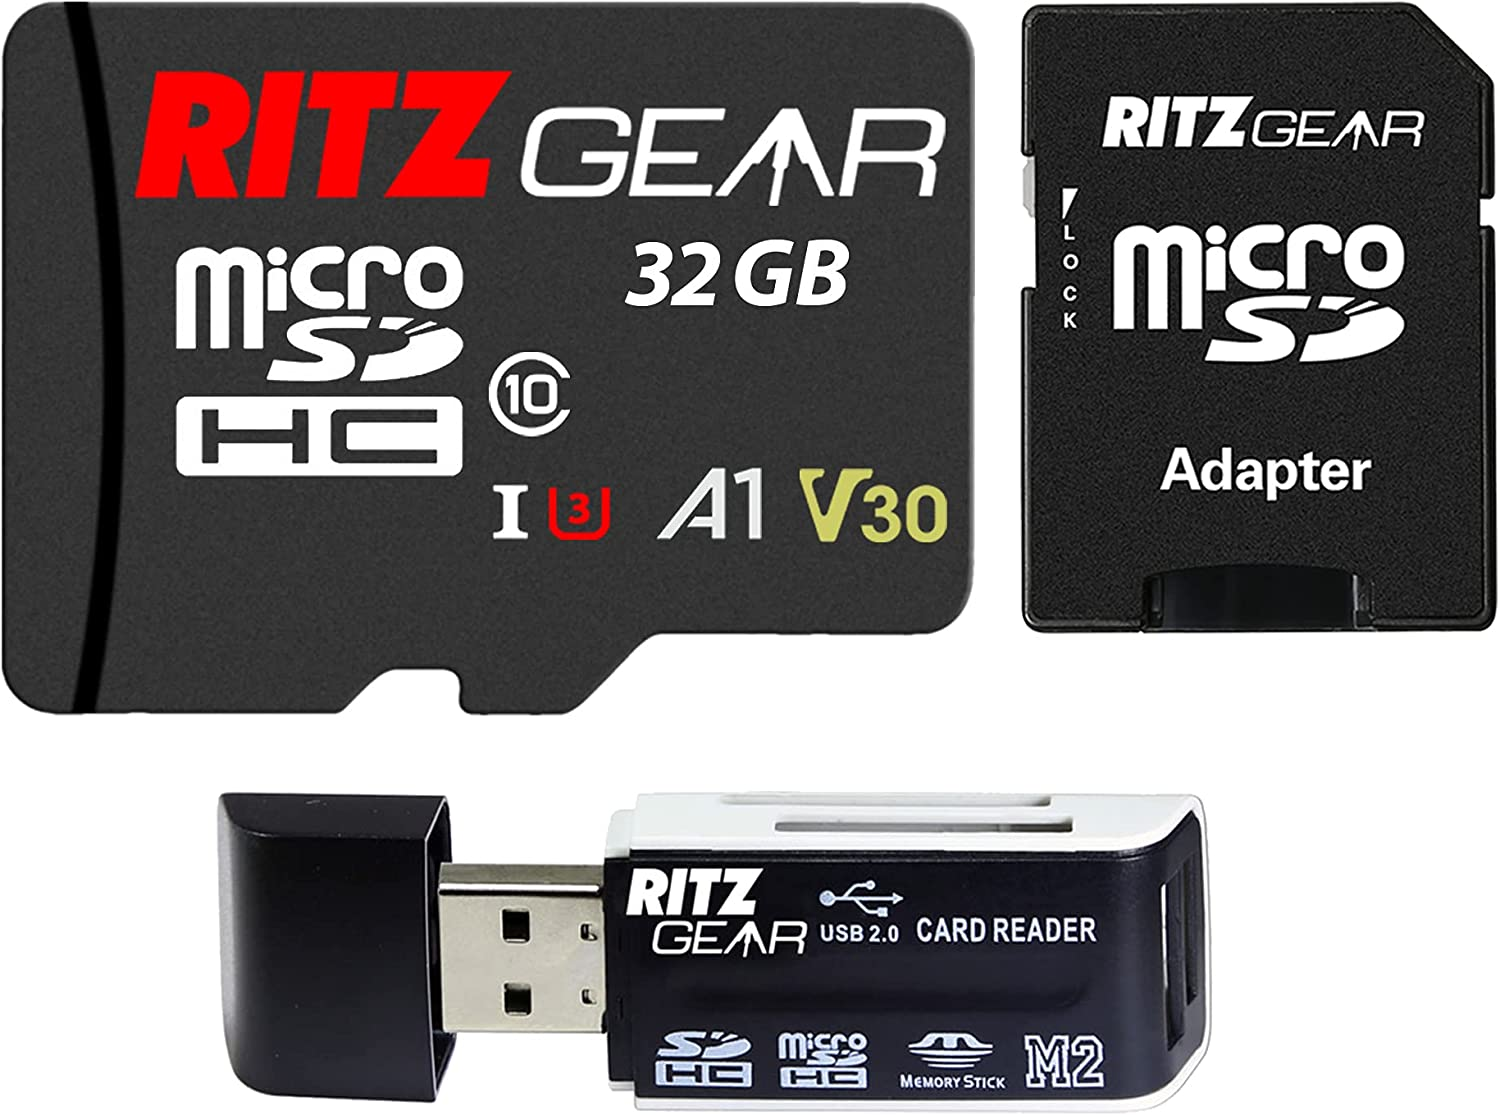 Ritz Gear Extreme Performance 32GB MicroSDXC Memory Card, Class10 V30 A1 U3 UHS1, Micro SD Card Compatible with Gaming Consoles, Cameras, Smartphones